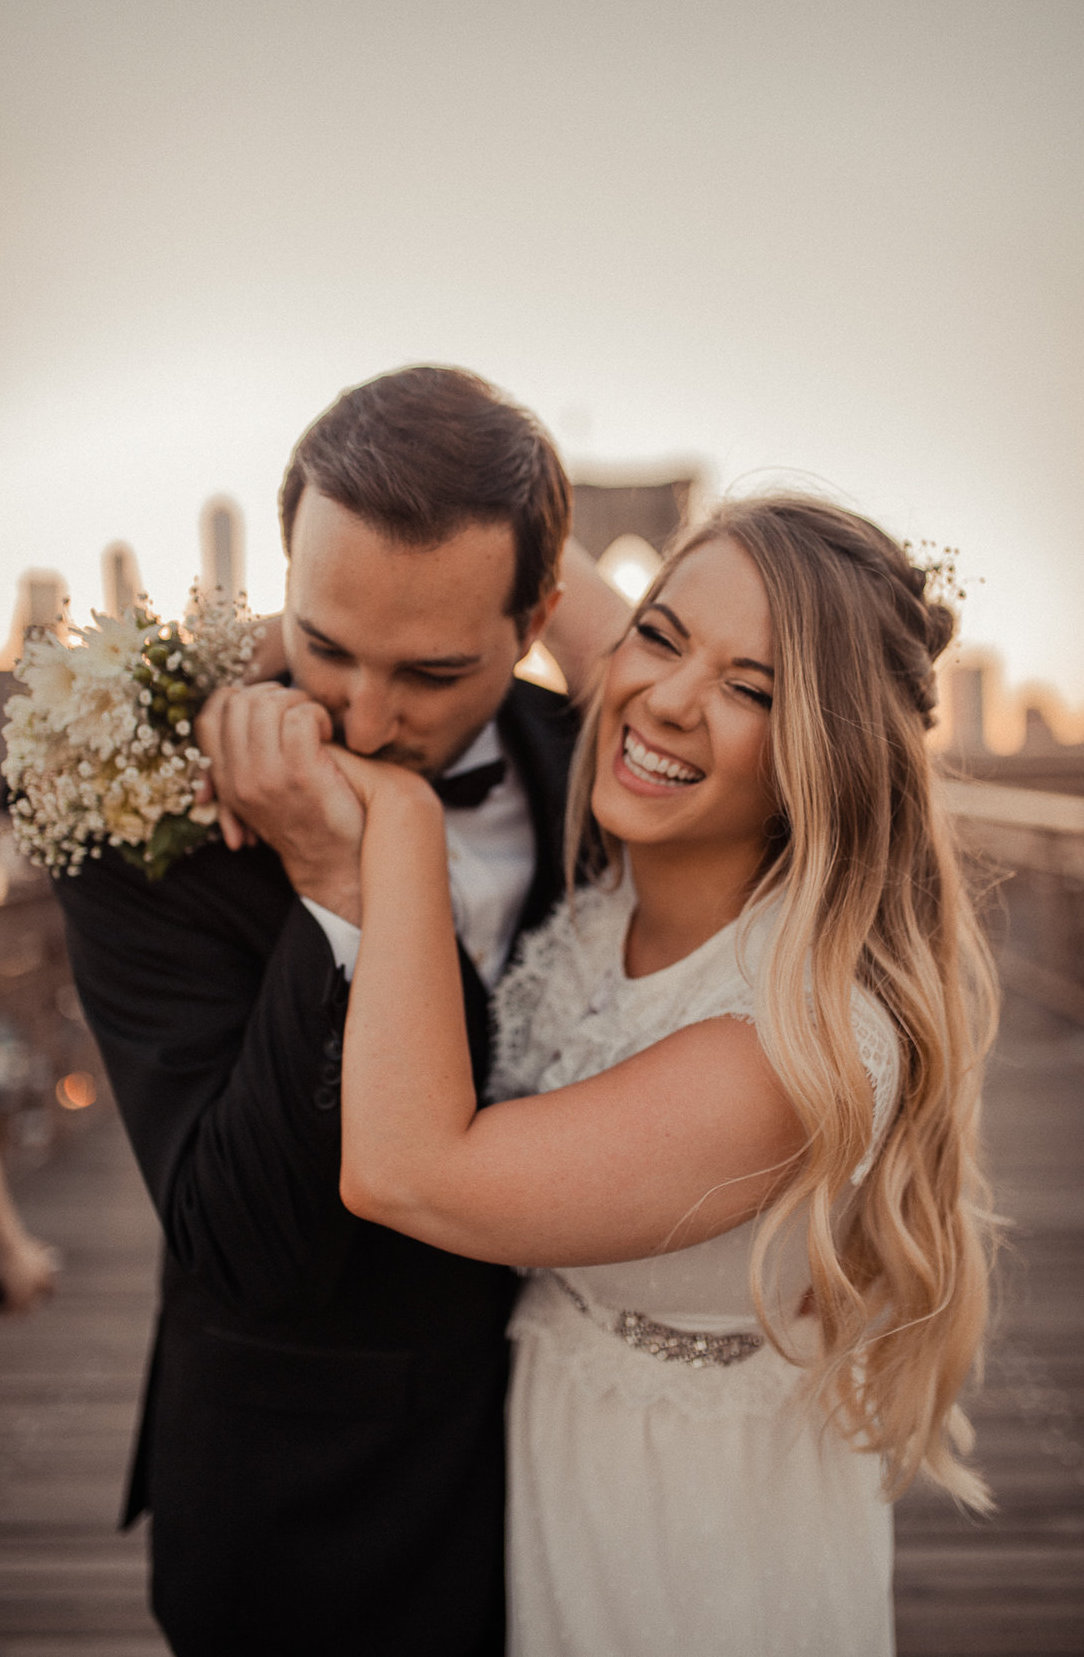 """she made us feel so comfortable. her feedback during the shoot— how to pose— was a really amazing experience. i wish she photographed our initial wedding!"" - -sarah x matthais, brooklyn vow renewal"